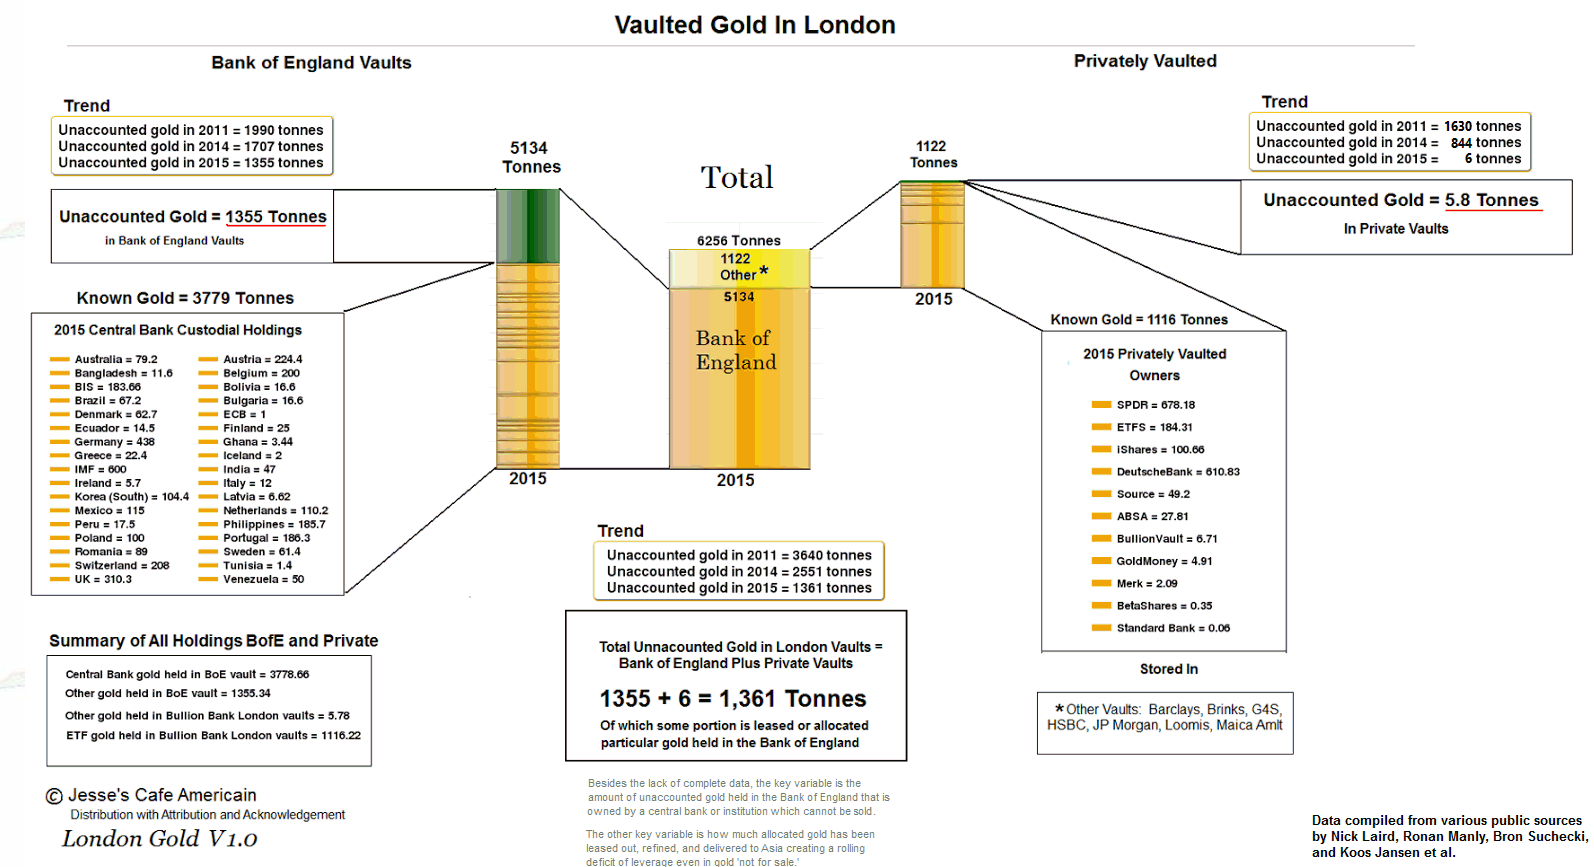 GoldCore: Vaulted Gold inside London